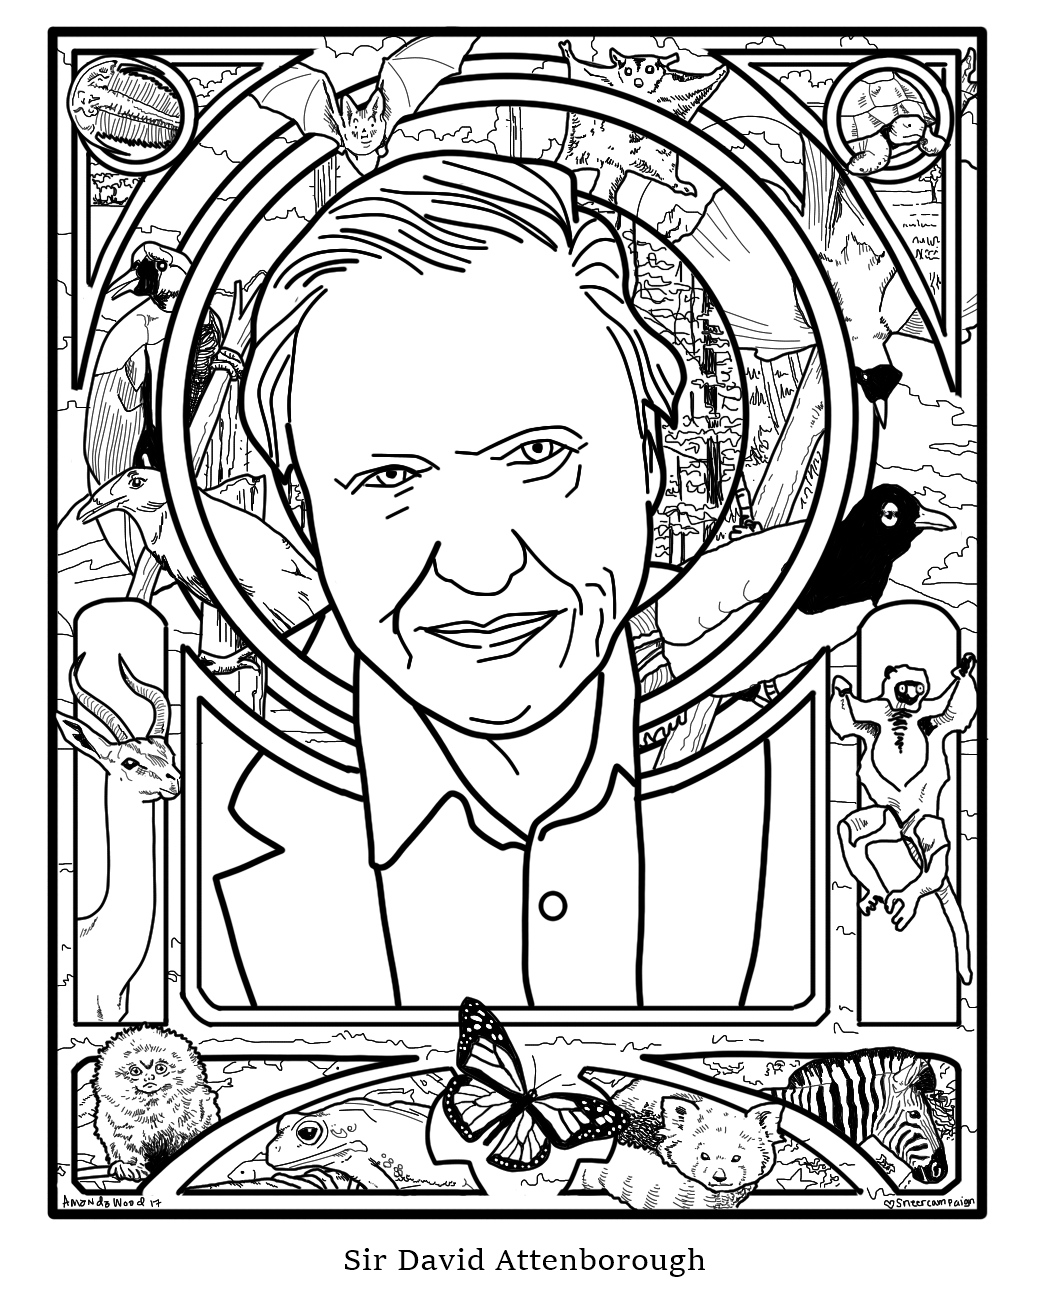 click to make big print to color it with your own crayons or pencils enlarge even bigger and make it into a poster and hang it on your wall